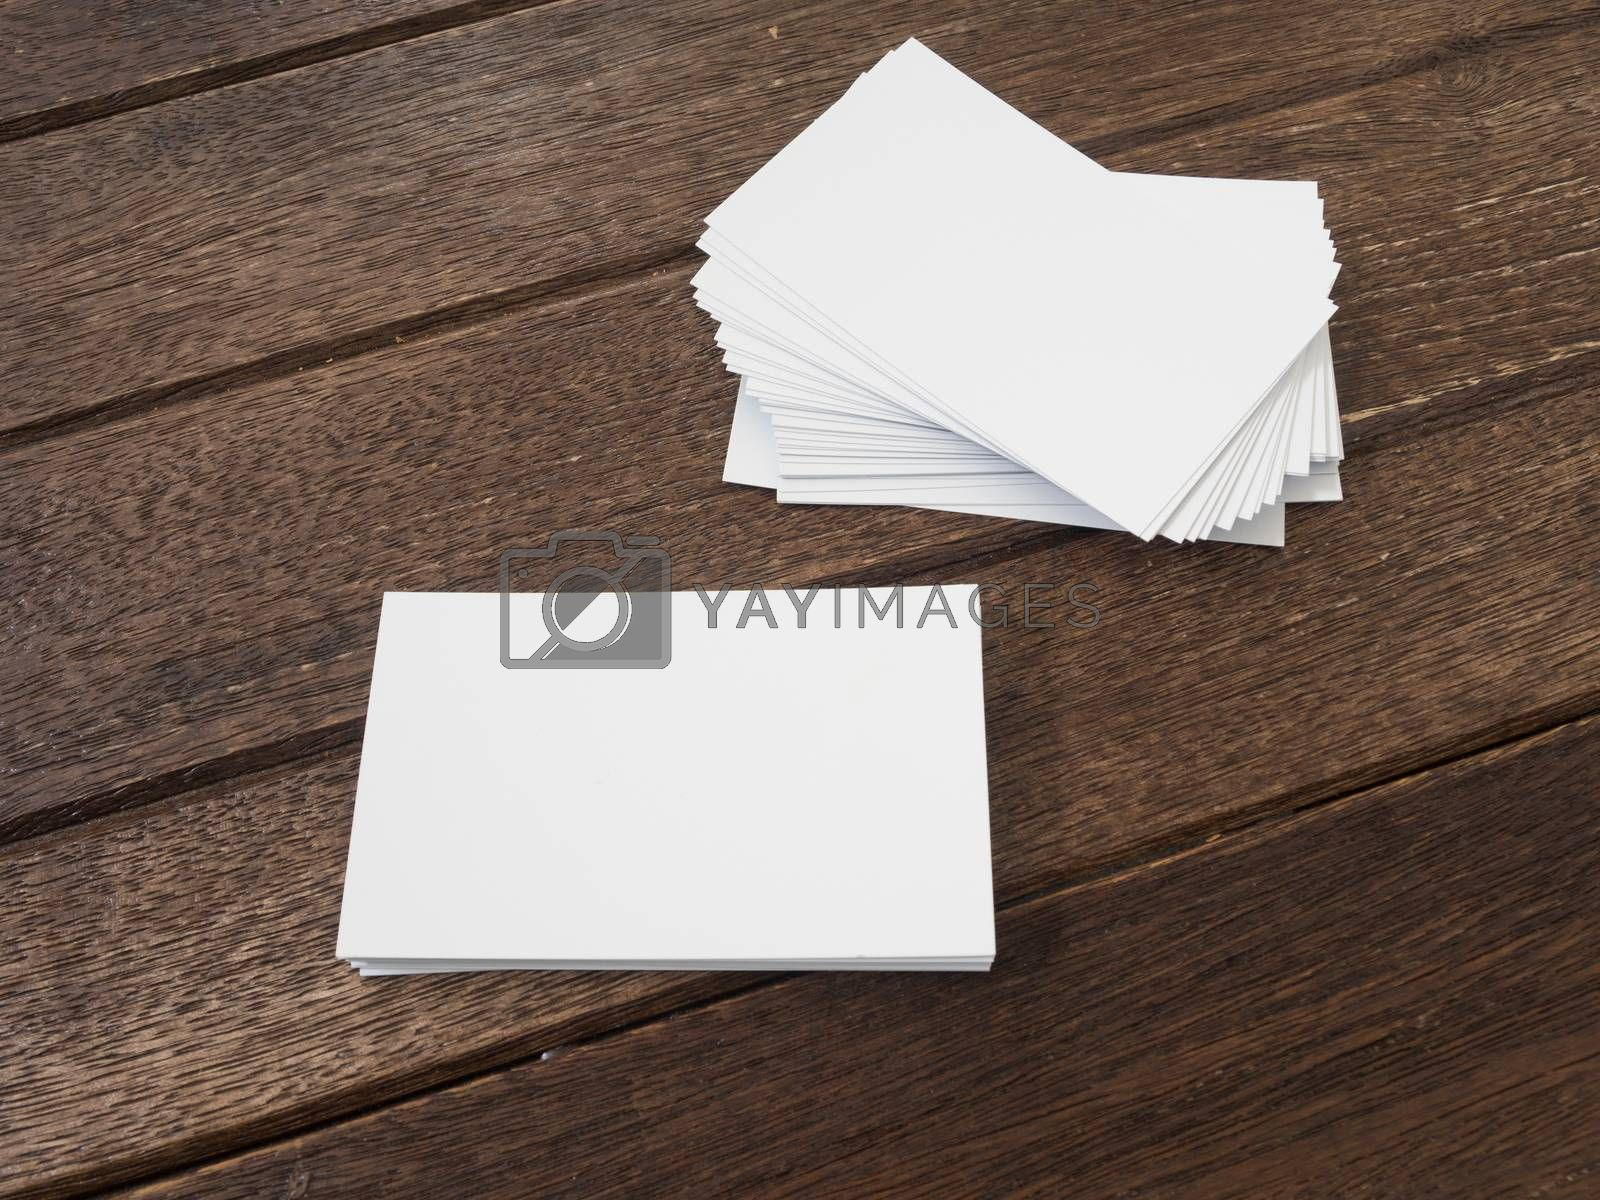 business card placed on a wooden table